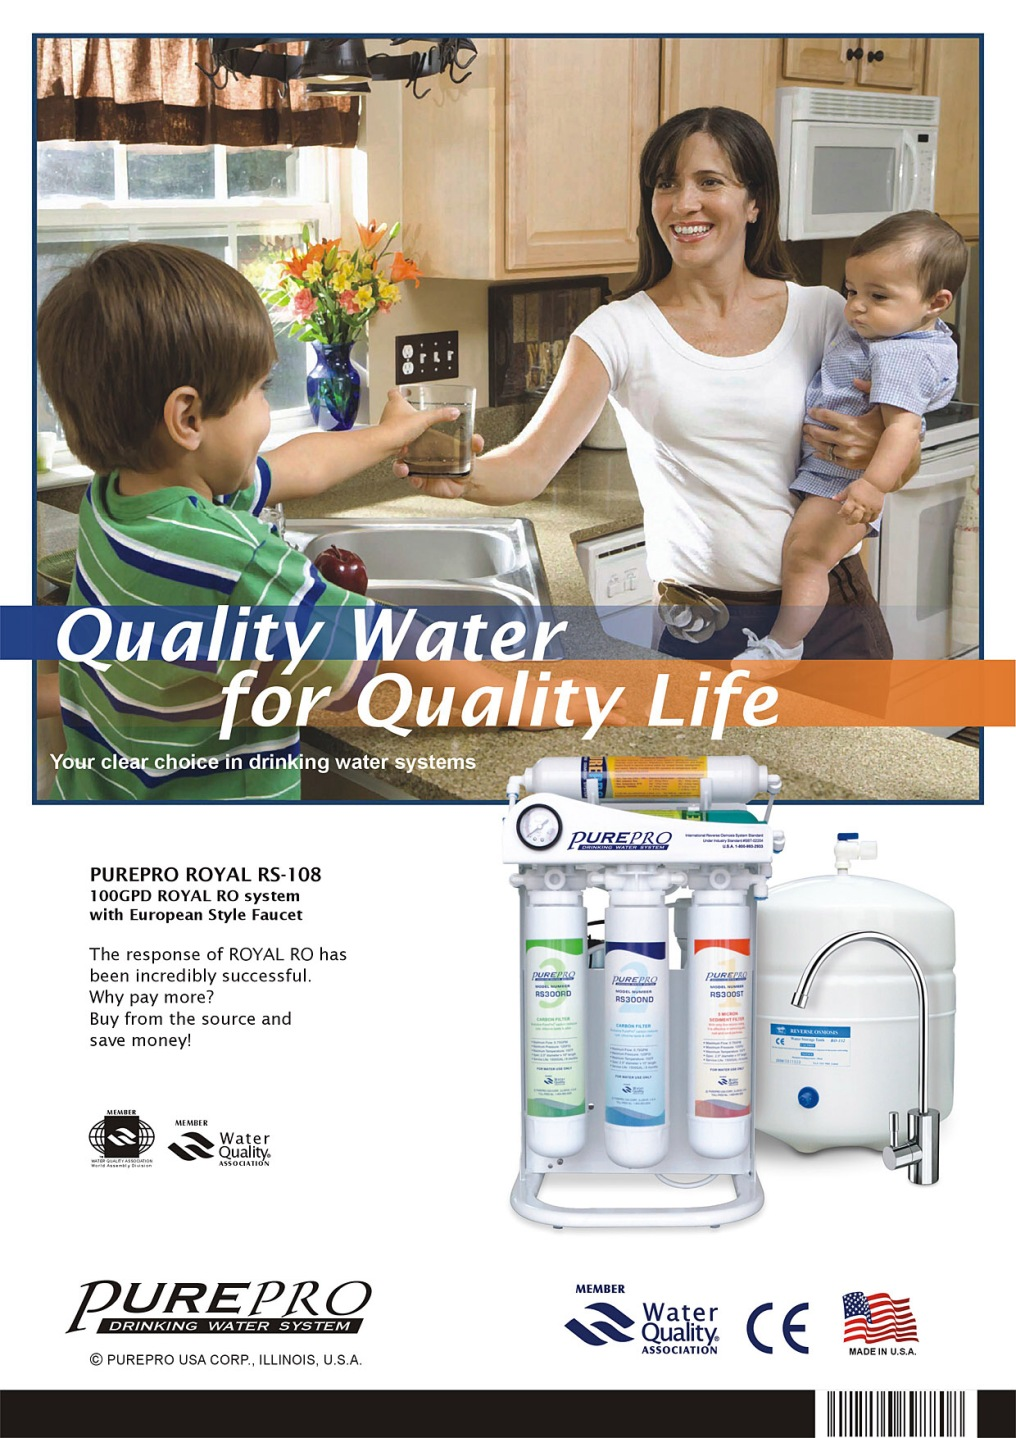 PurePro Royal ® RS-108 Reverse Osmosis / Nanofiltration Water Purification System